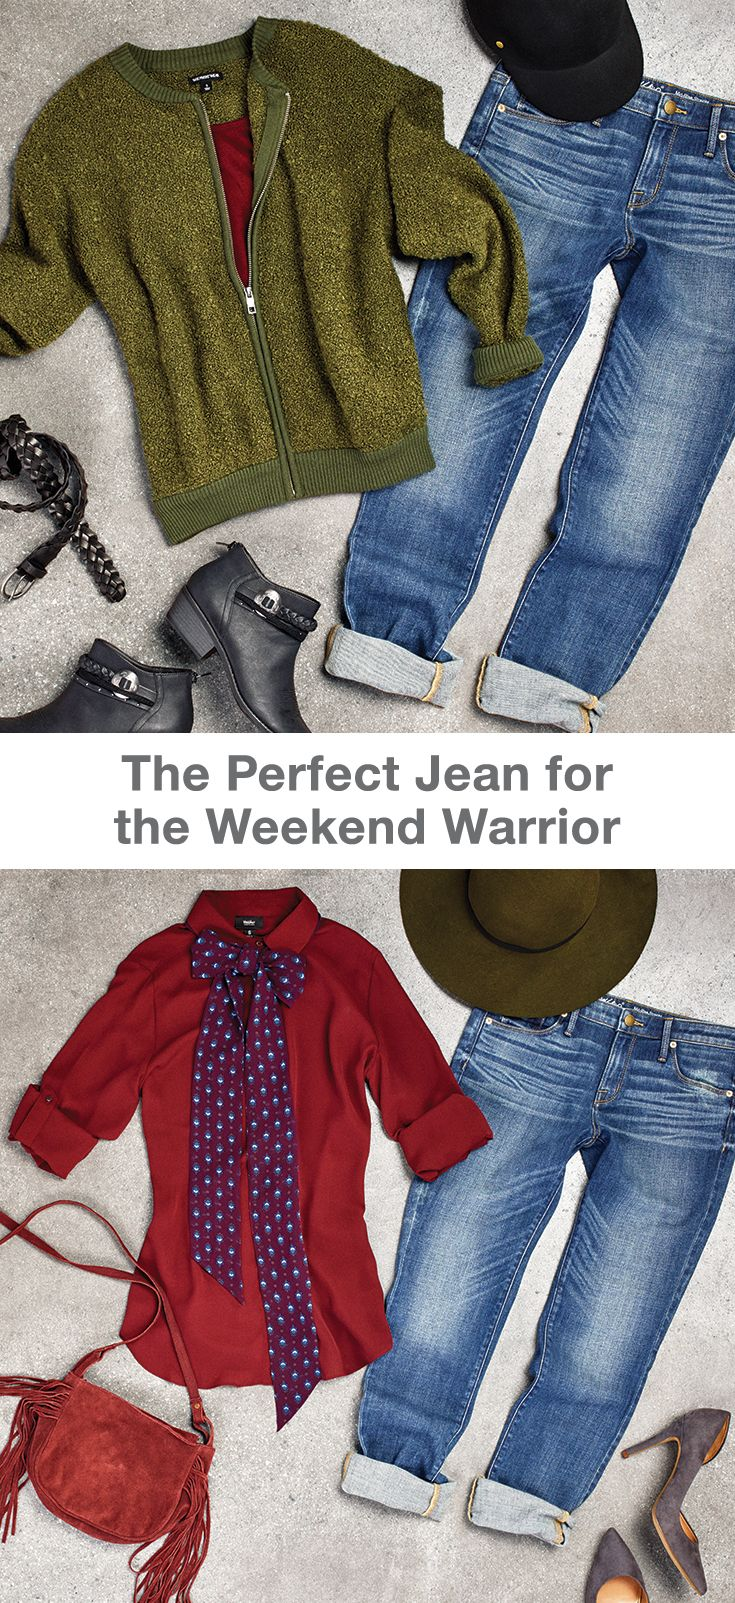 While it might be a cozy weekend staple, the boyfriend jean is actually one of the most versatile denim cuts. Pair it with a zip up sweater to run weekend morning errands, and make your jeans tomboy chic for brunch with pointed toe heels and a super feminine blouse. And don't worry about hat head -- you can trade your baseball cap for a wide brim hat for a Sunday look you can throw on and go, wherever your destination.